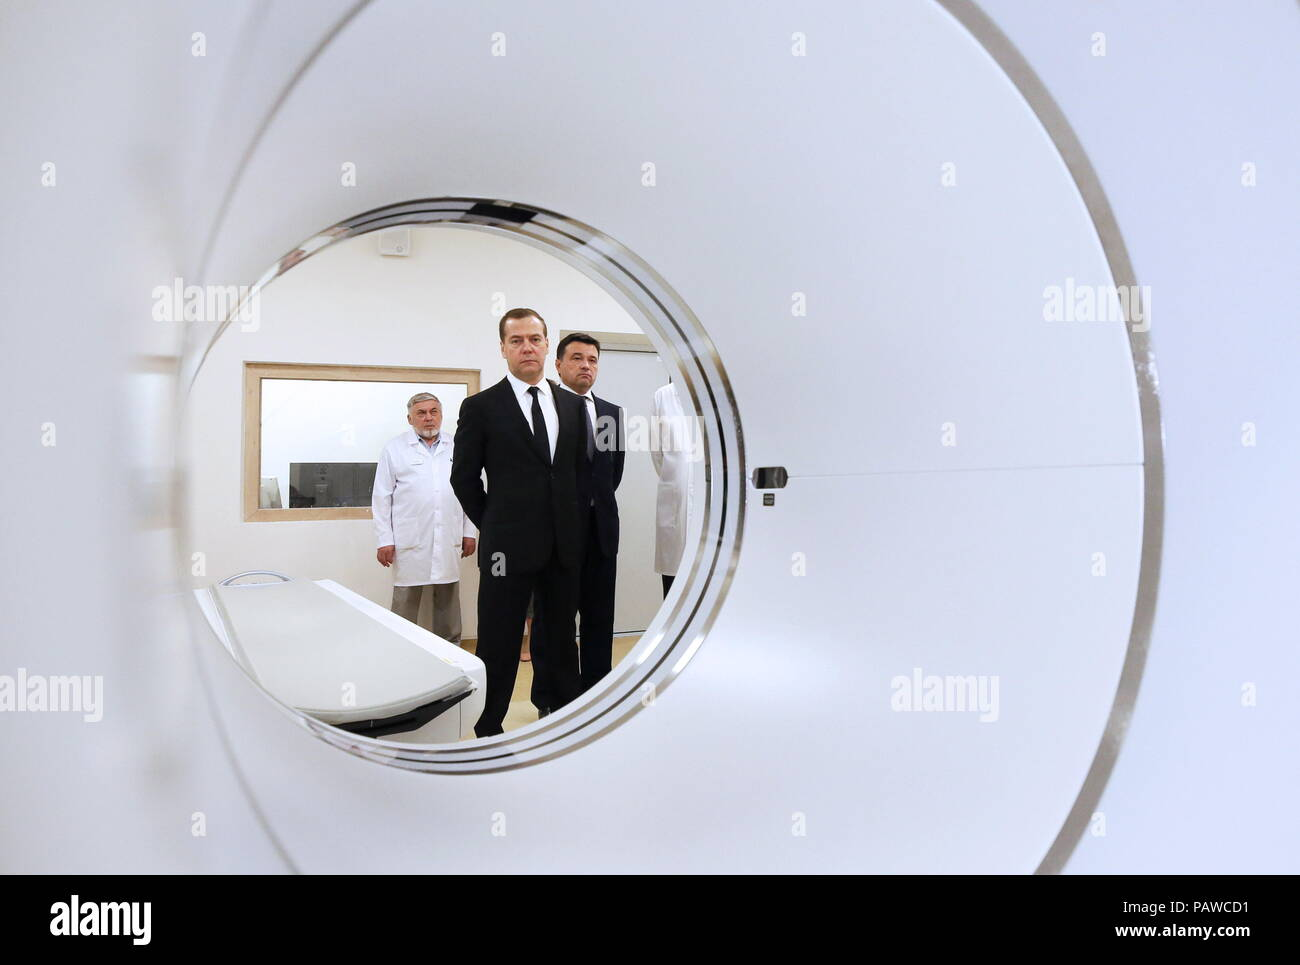 Russia. 25th July, 2018. MOSCOW REGION, RUSSIA - JULY 25, 2018: Russia's Prime Minister Dmitry Medvedev (L) and Moscow Region Governor Andrei Vorobyov (L back) visit an oncoradiological cancer centre in the city of Balashikha. Yekaterina Shtukina/TASS Credit: ITAR-TASS News Agency/Alamy Live News - Stock Image